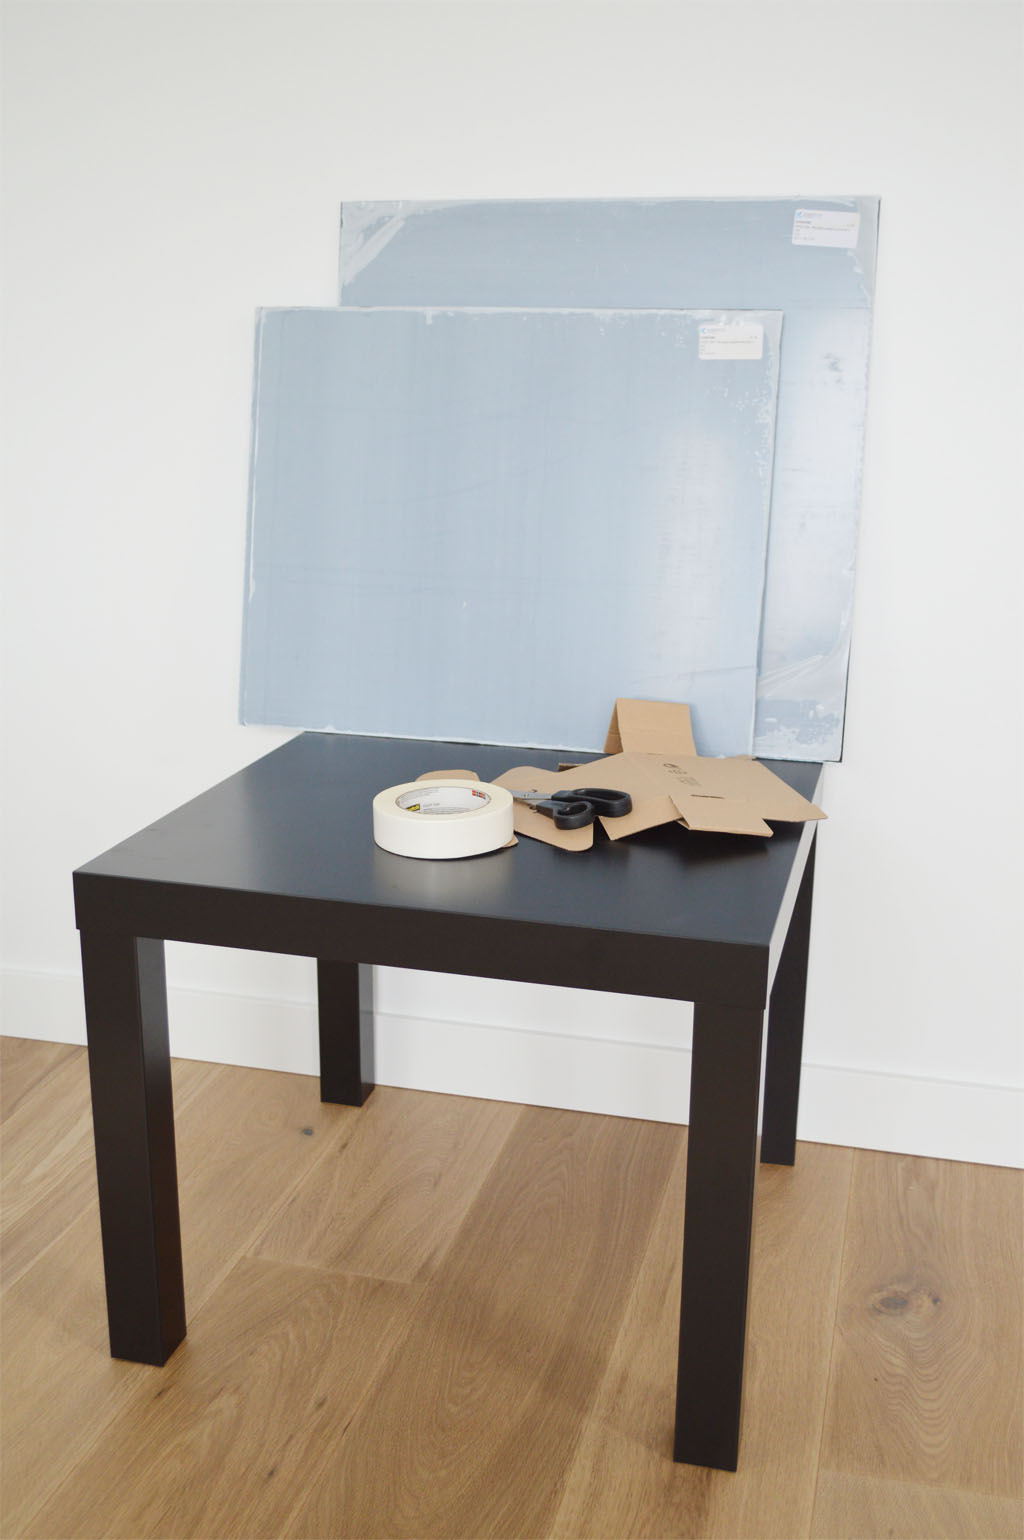 Table Transparente Plexiglass Ikea Hack Lack Table With Plexiglas Ikea Hack Lack Tisch Mit